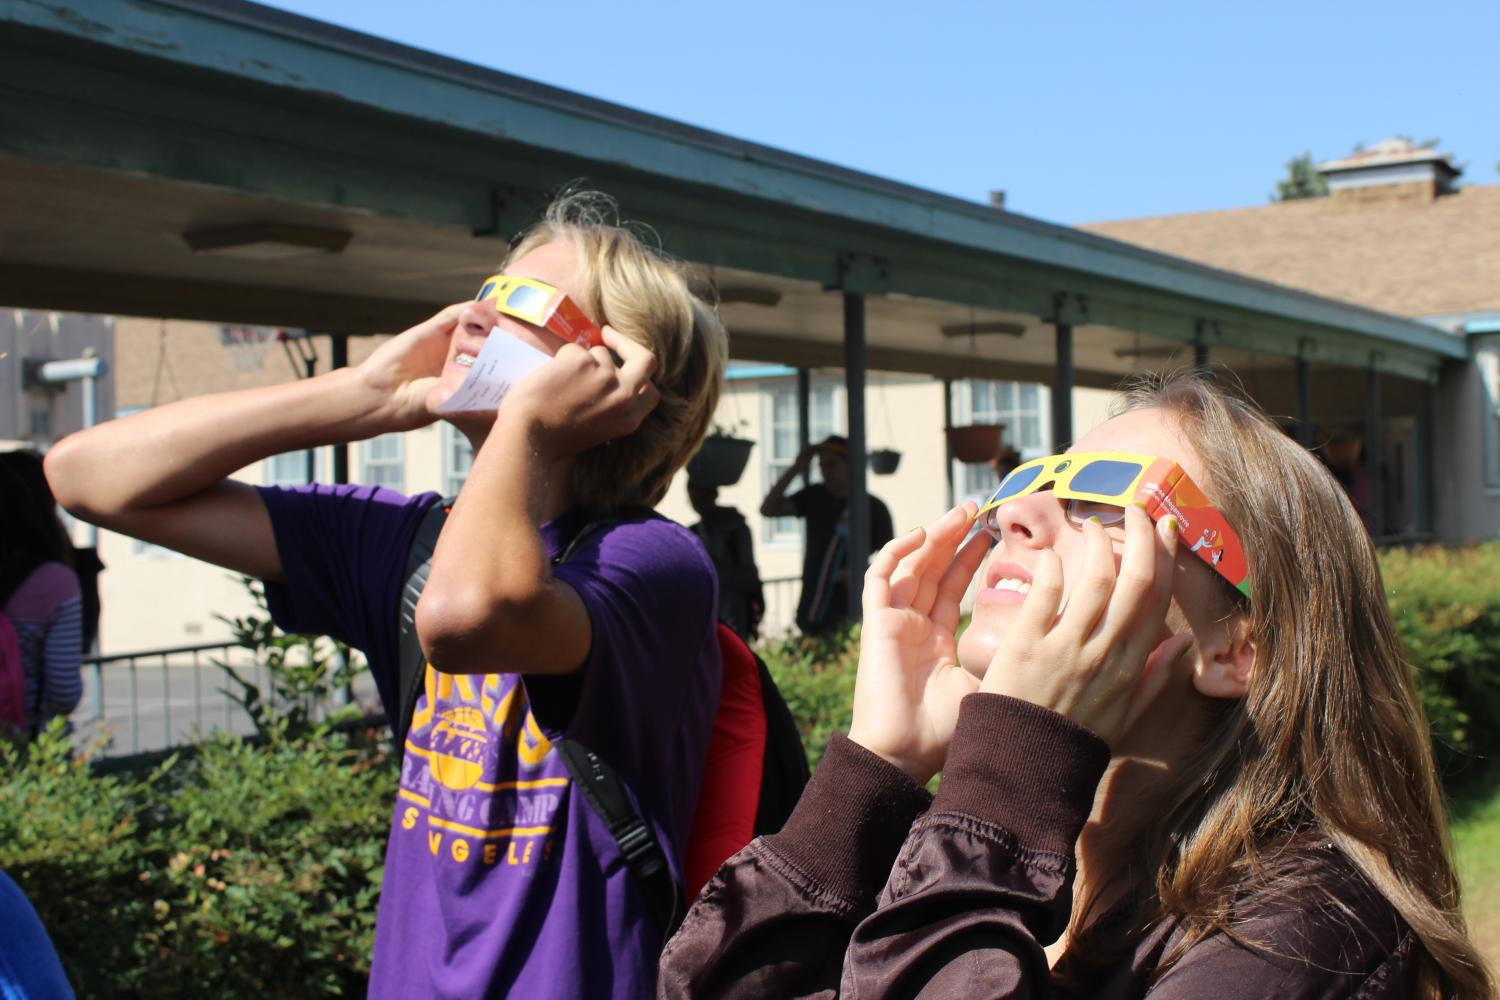 Sophomore Cuyler Huffman and junior Lauryn Uhlenberg view the eclipse using special glasses.